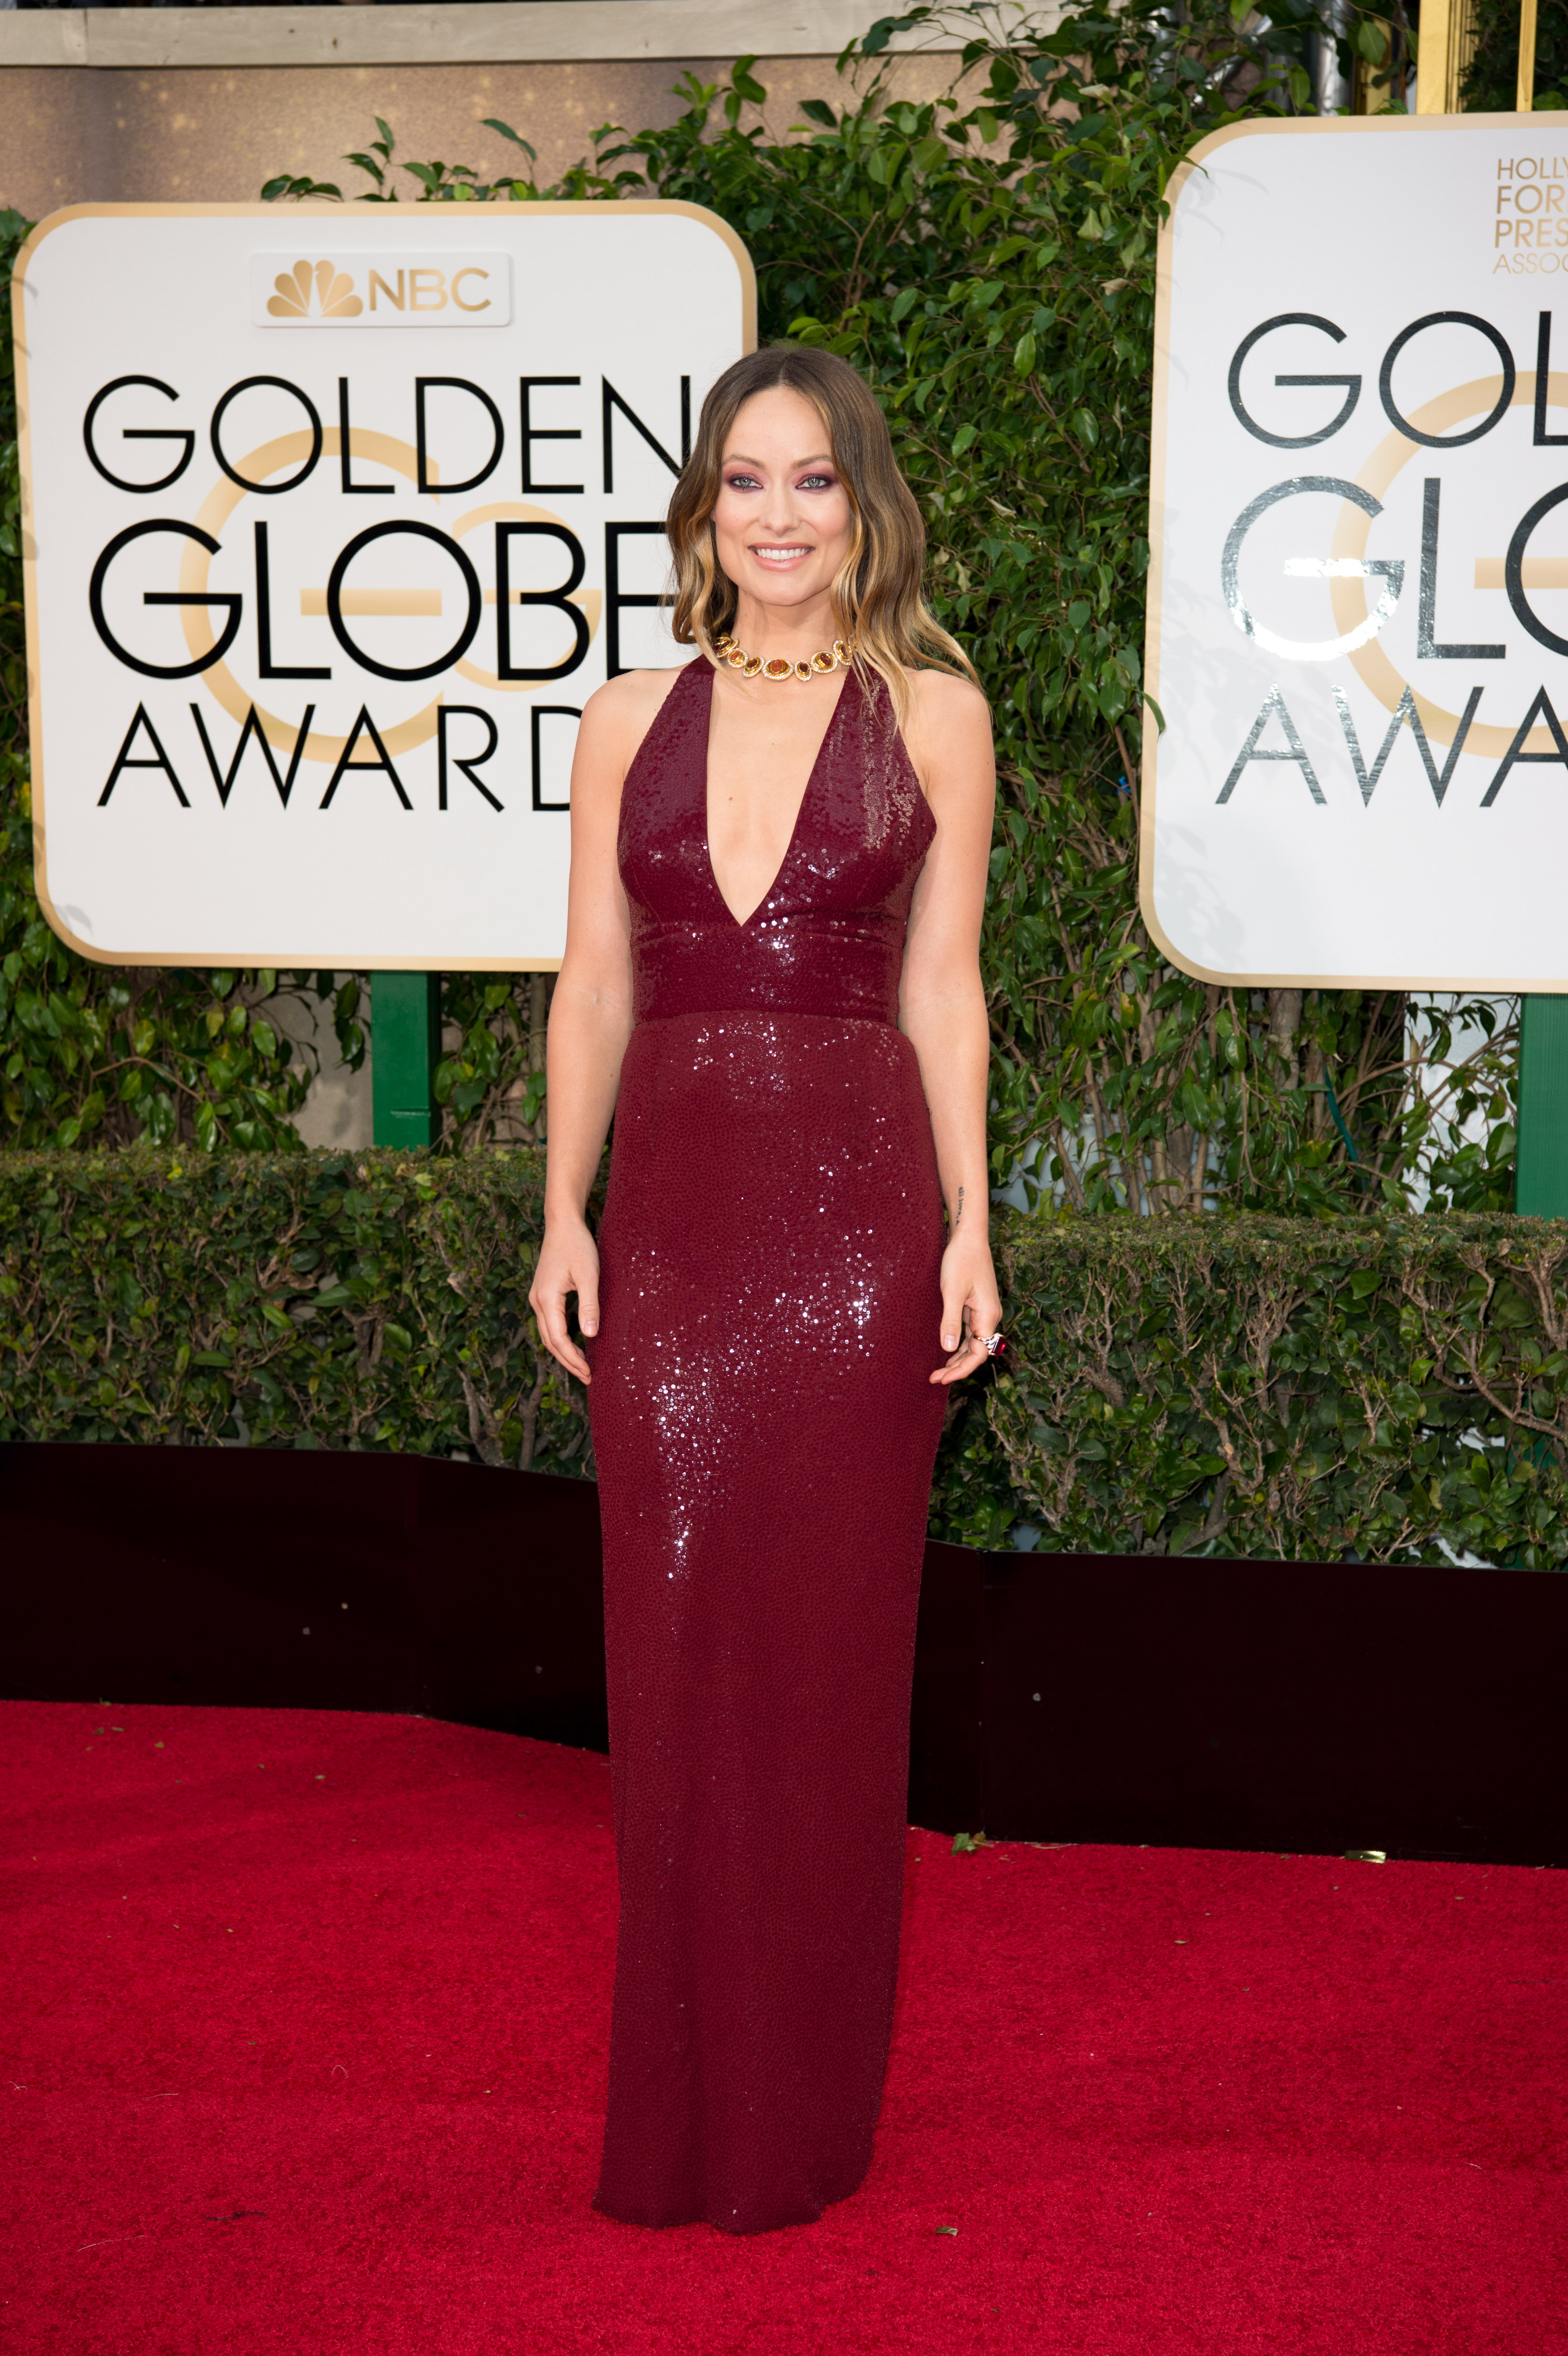 Olivia Wilde arrives at the 73rd Annual Golden Globe Awards at the Beverly Hilton in Beverly Hills, CA on Sunday, January 10, 2016.